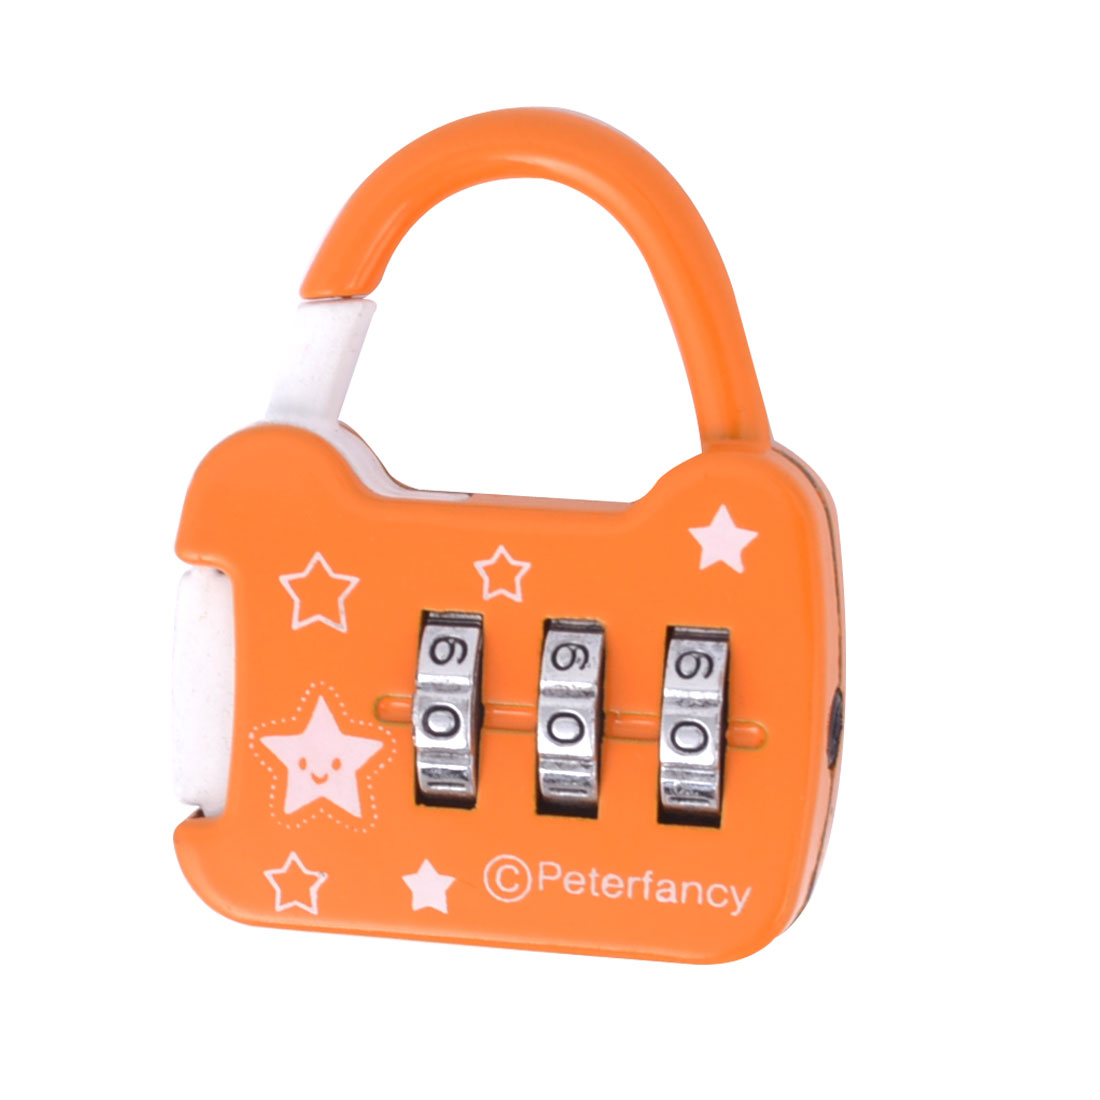 Orange Handbag Shaped Jewelry Box Drawer Combination Password Padlock